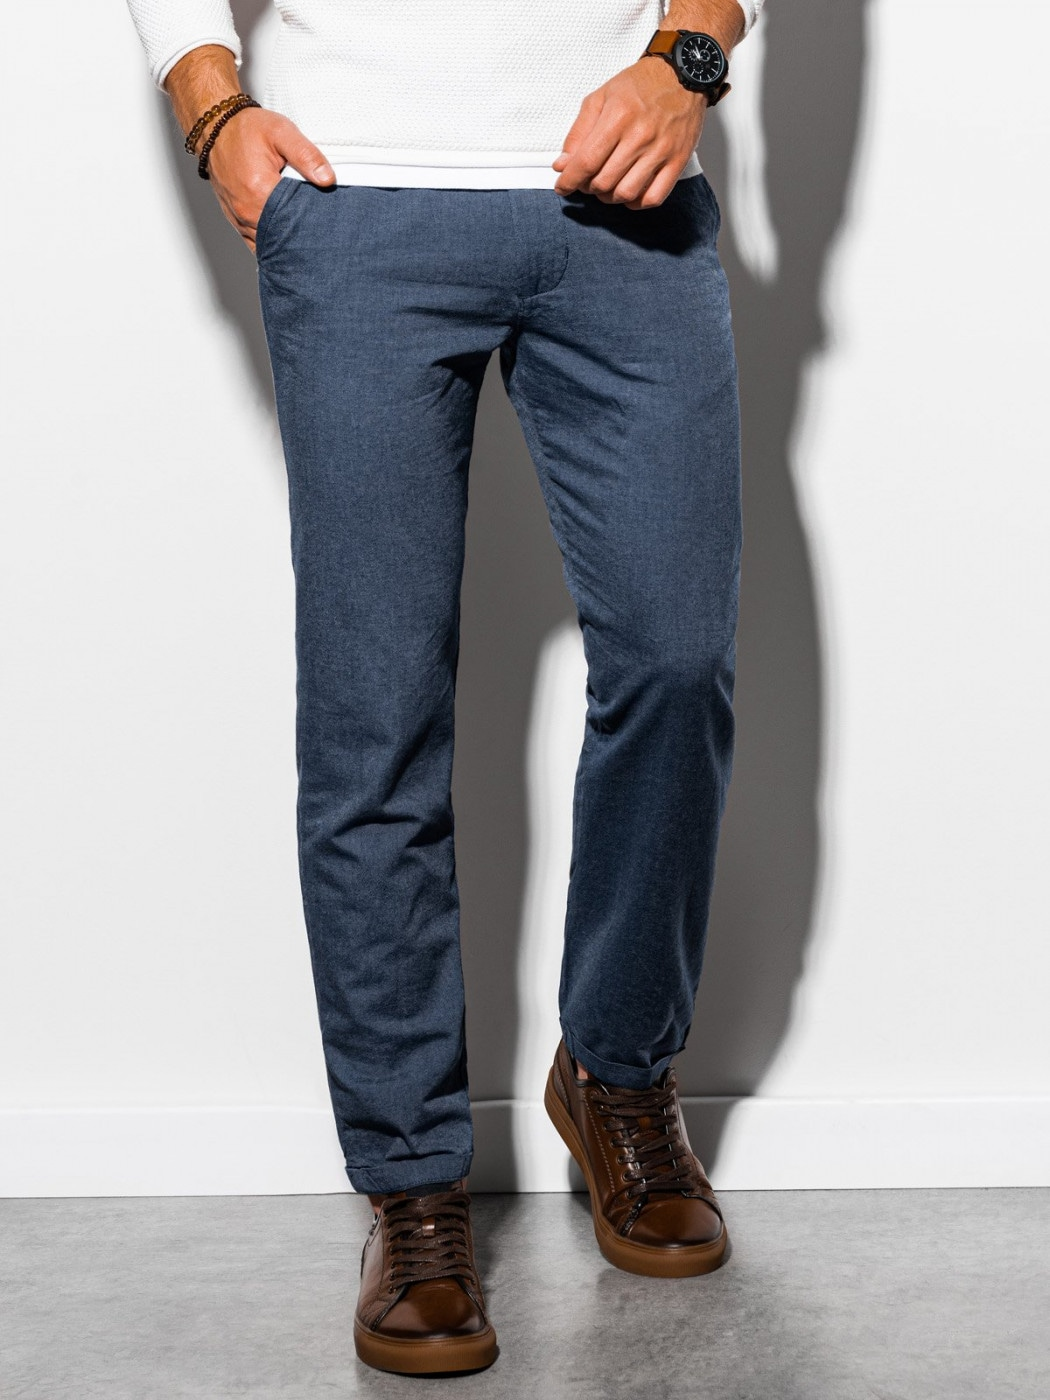 Ombre Clothing Men's pants chinos P892